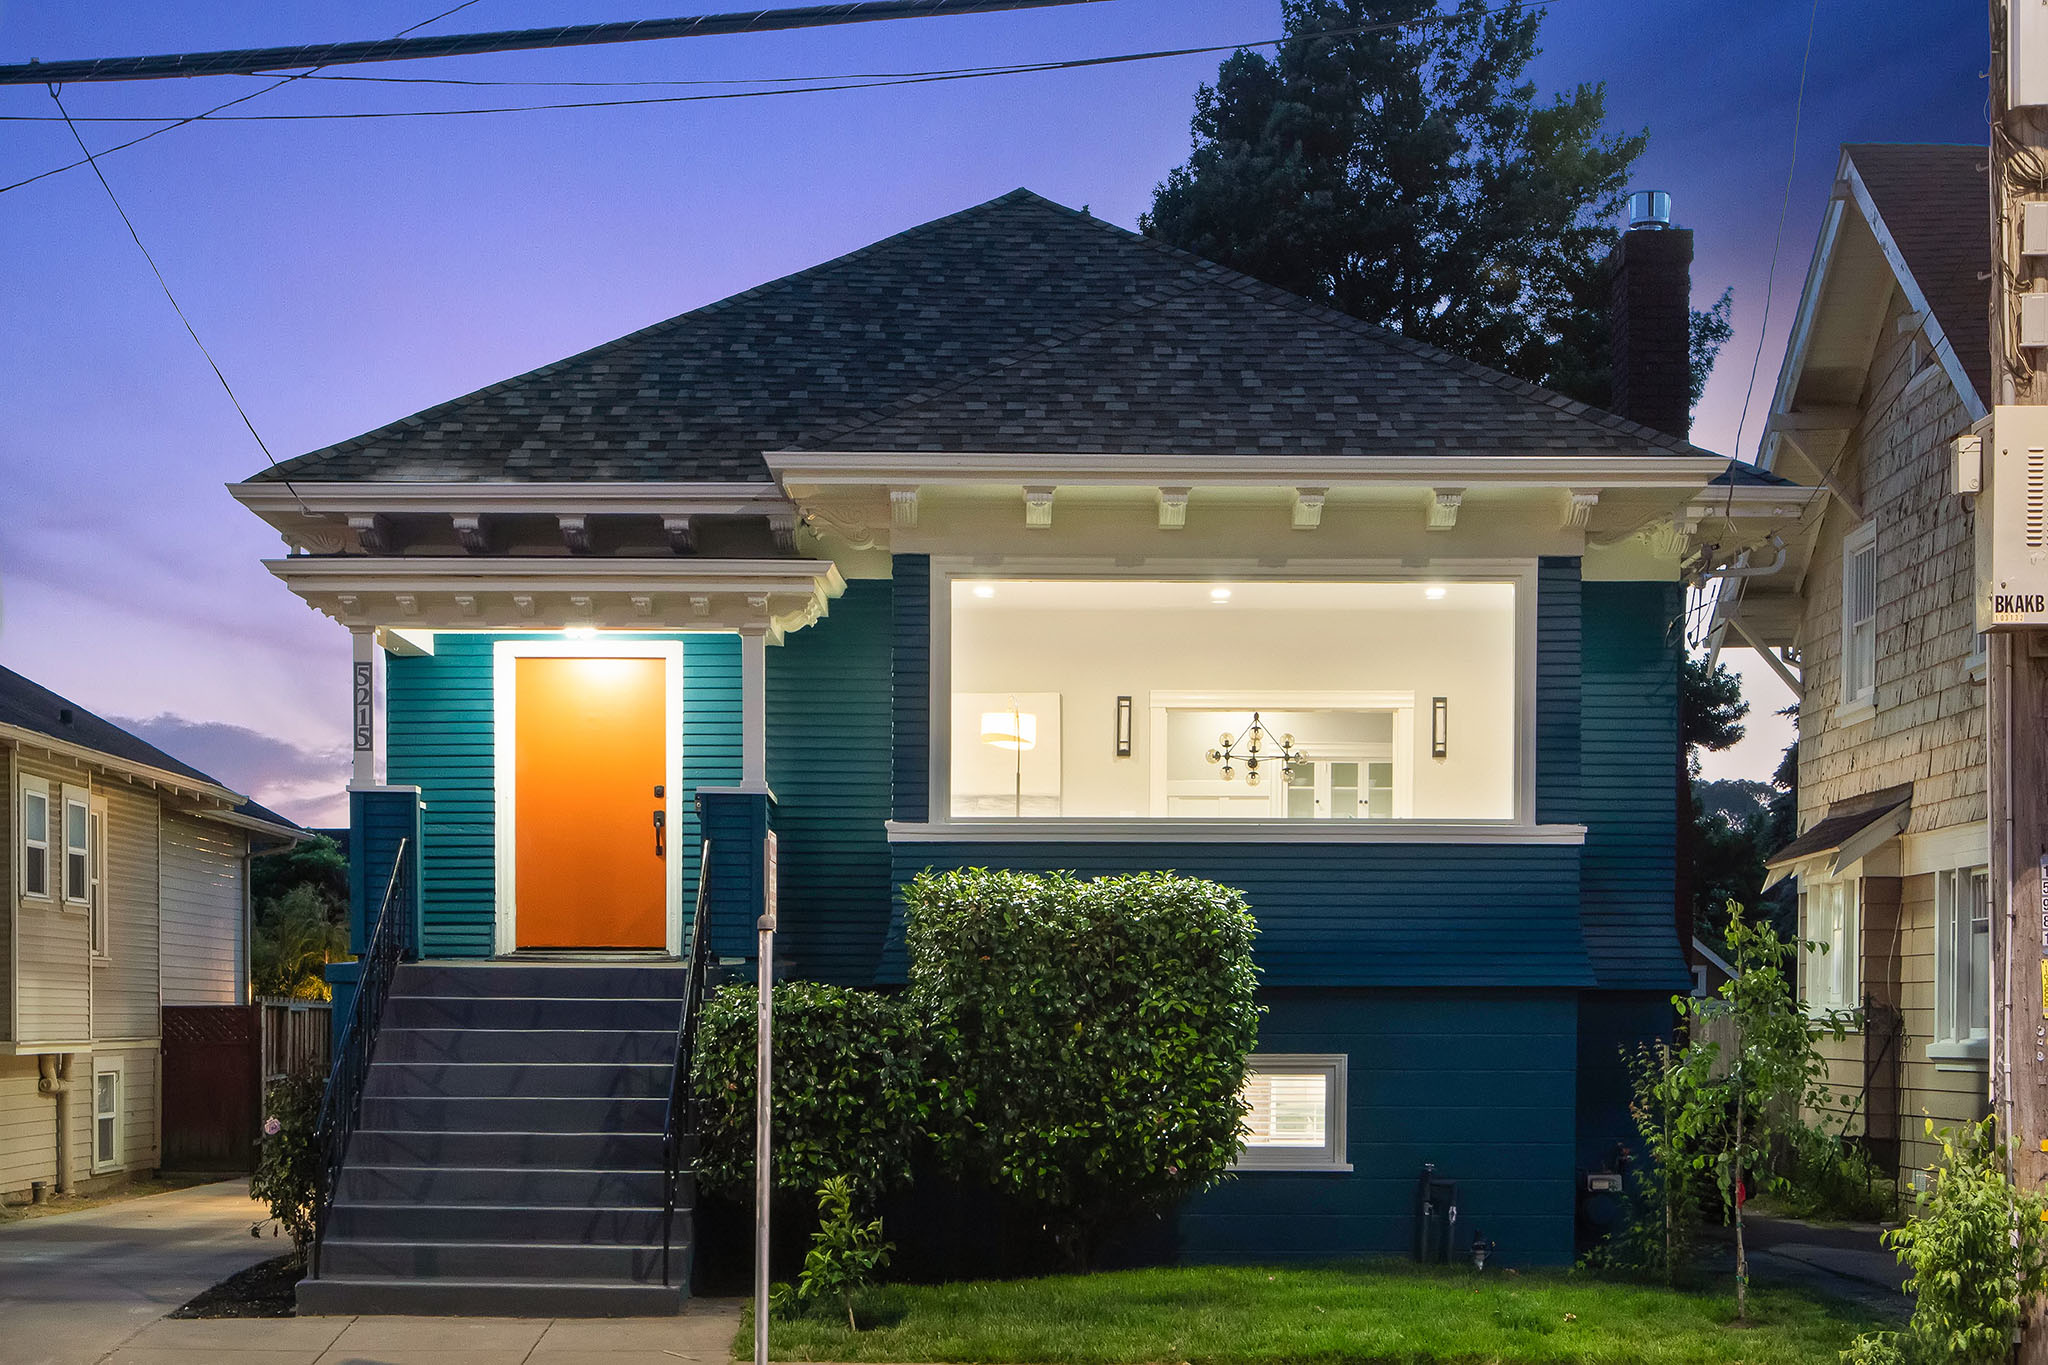 1890 Craftsman, Oakland CA. Full Gut Renovation.